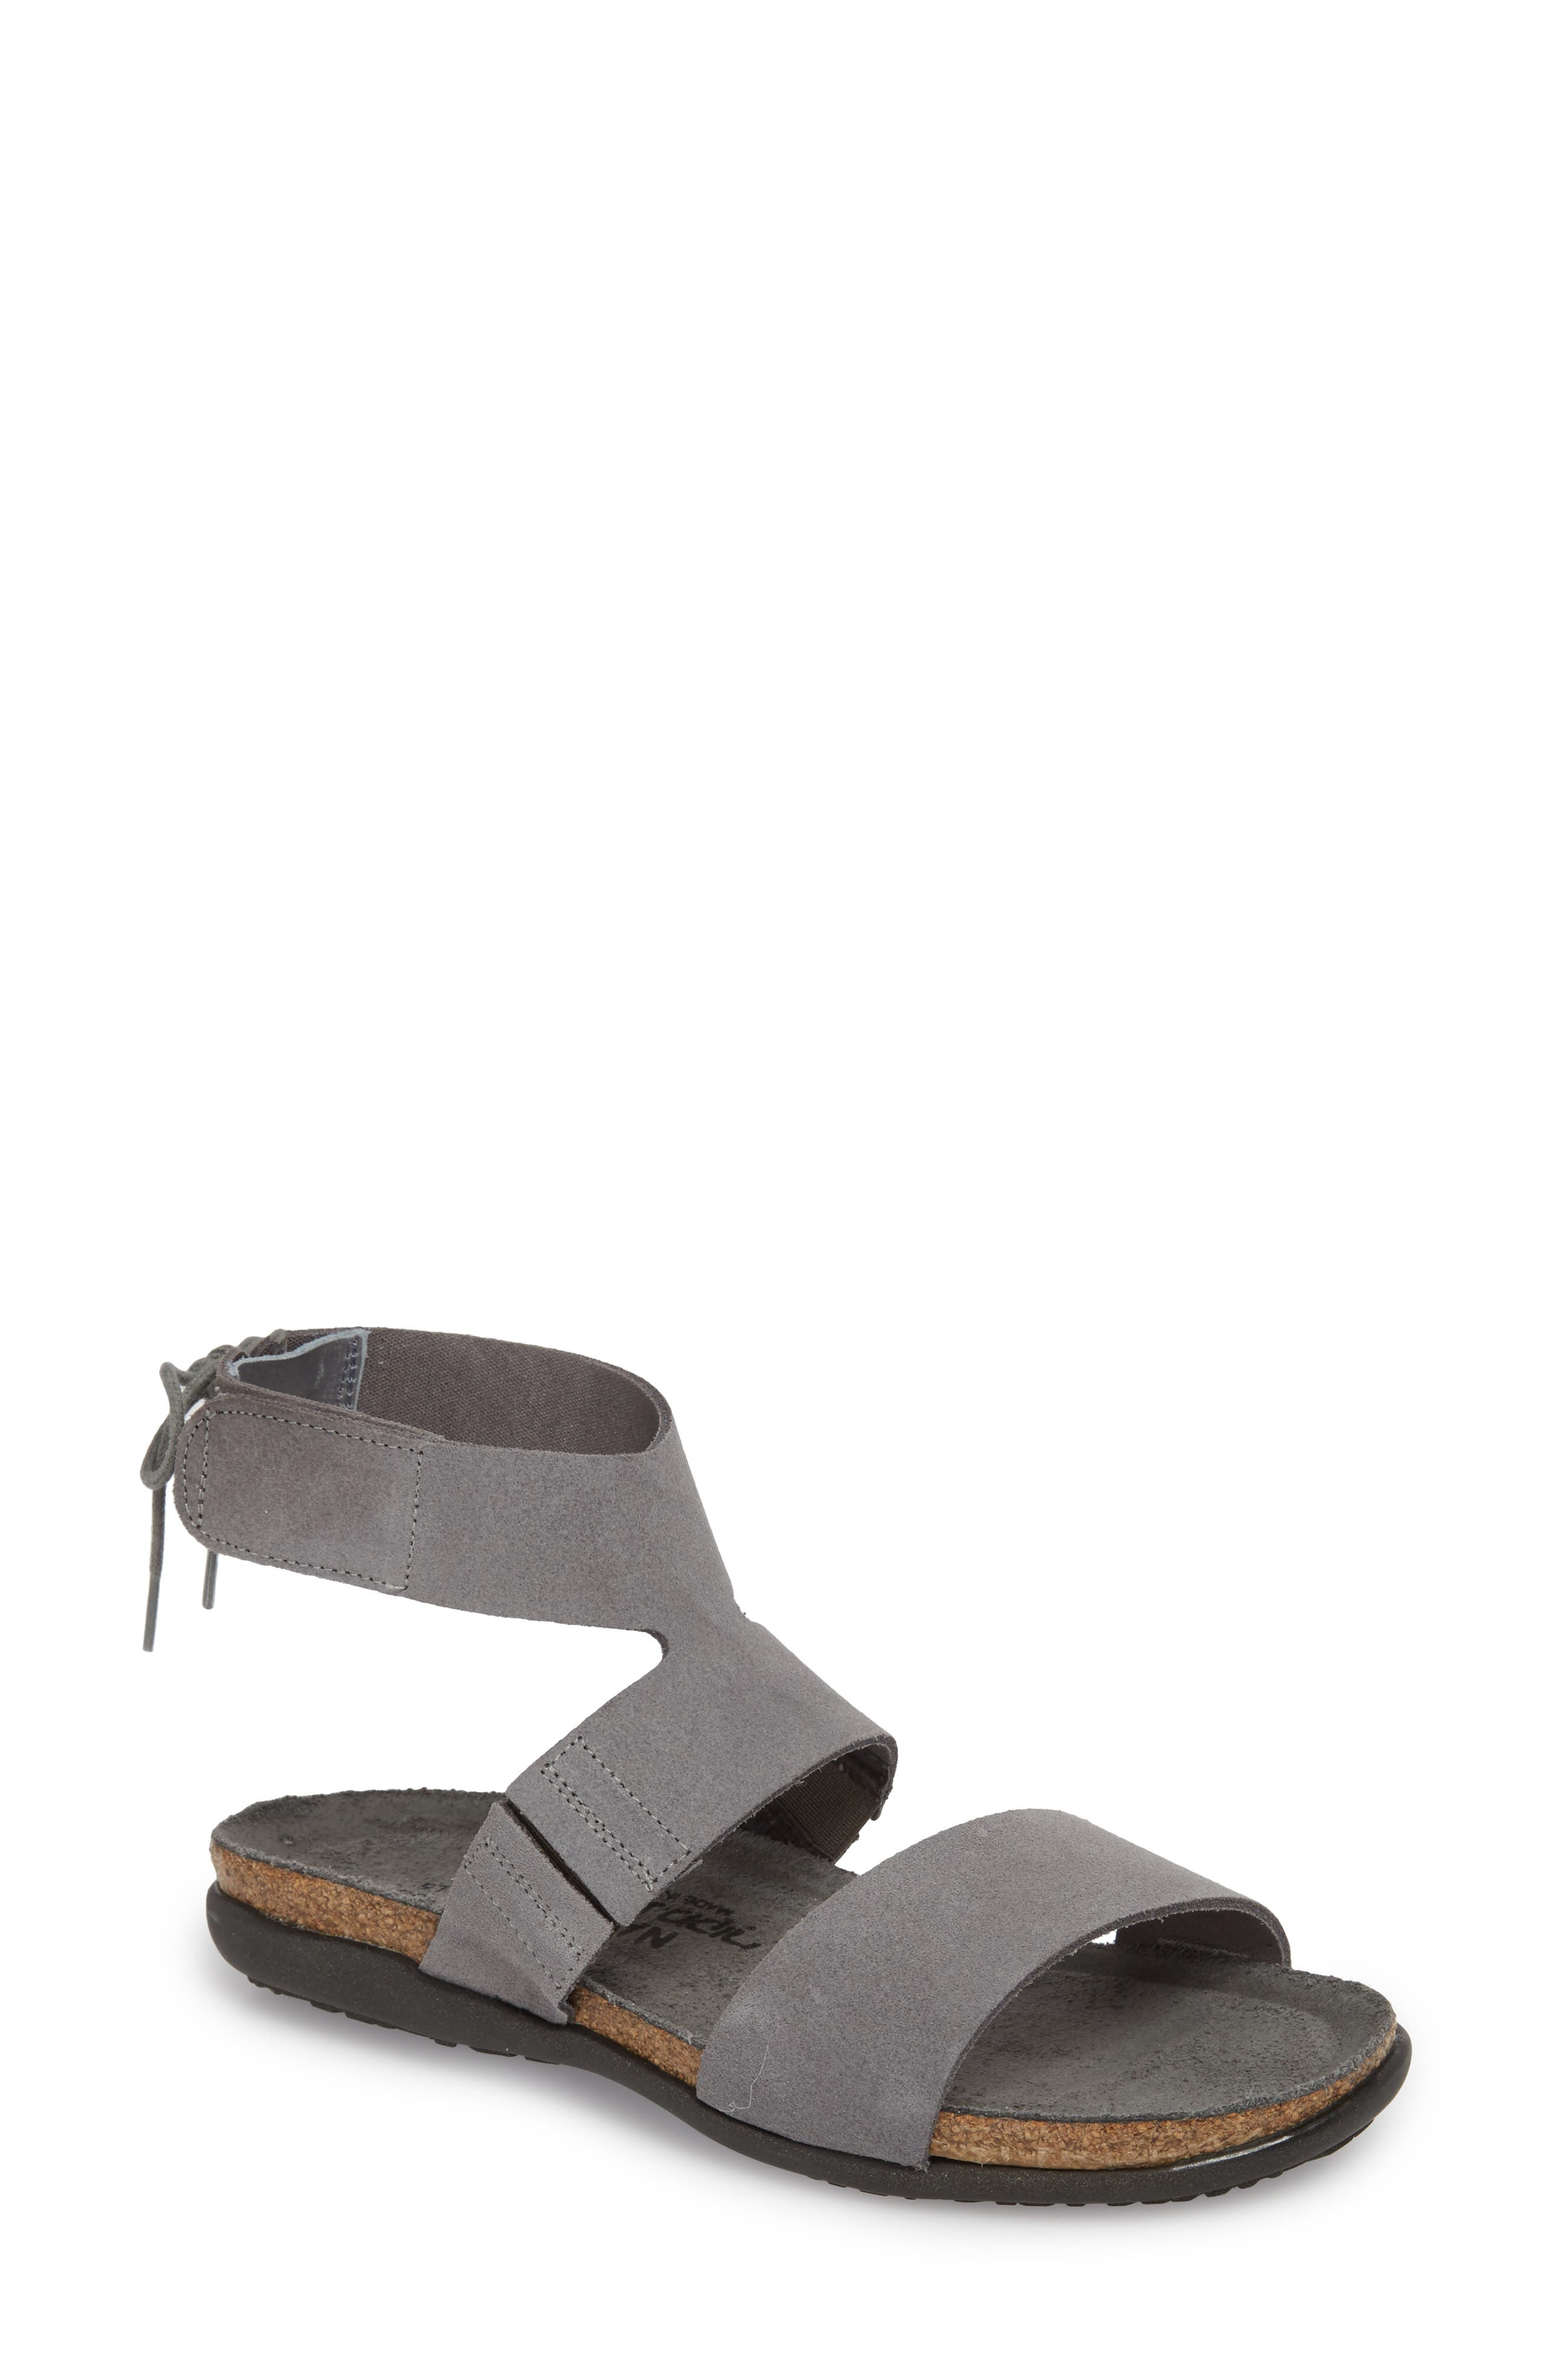 Larissa Ankle Strap Sandal,                             Main thumbnail 2, color,